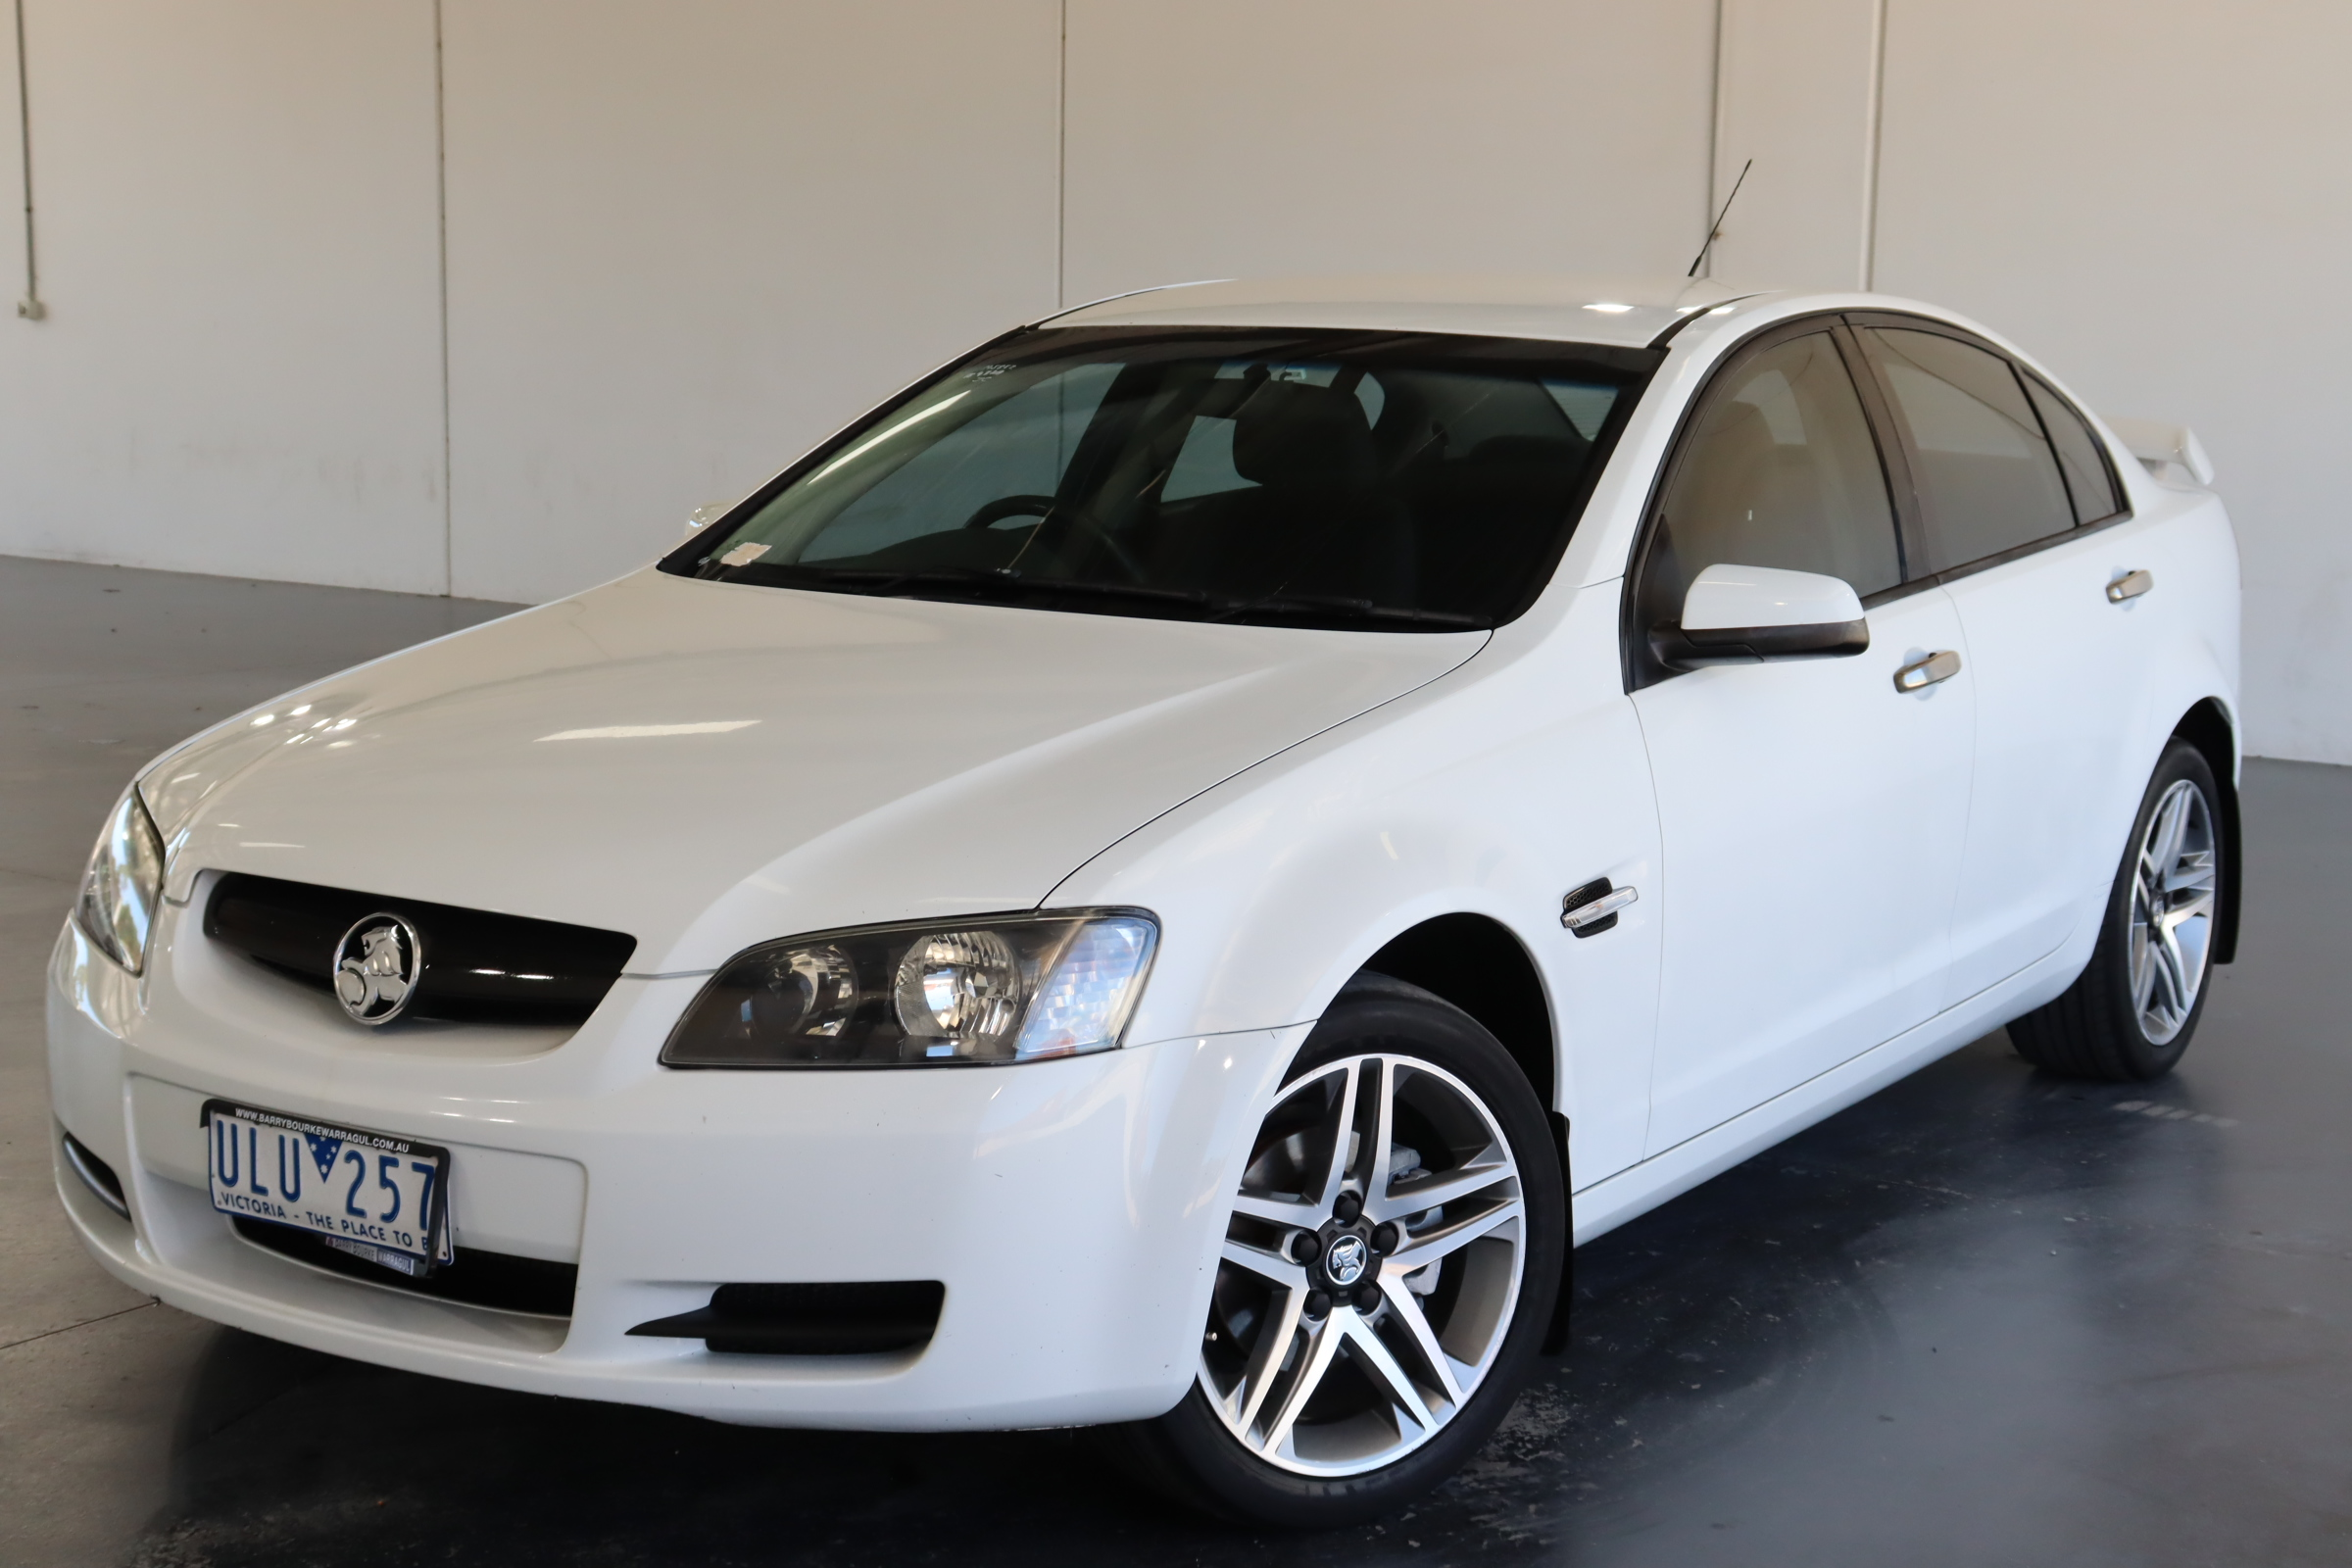 2006 Holden Commodore Omega VE Automatic Sedan